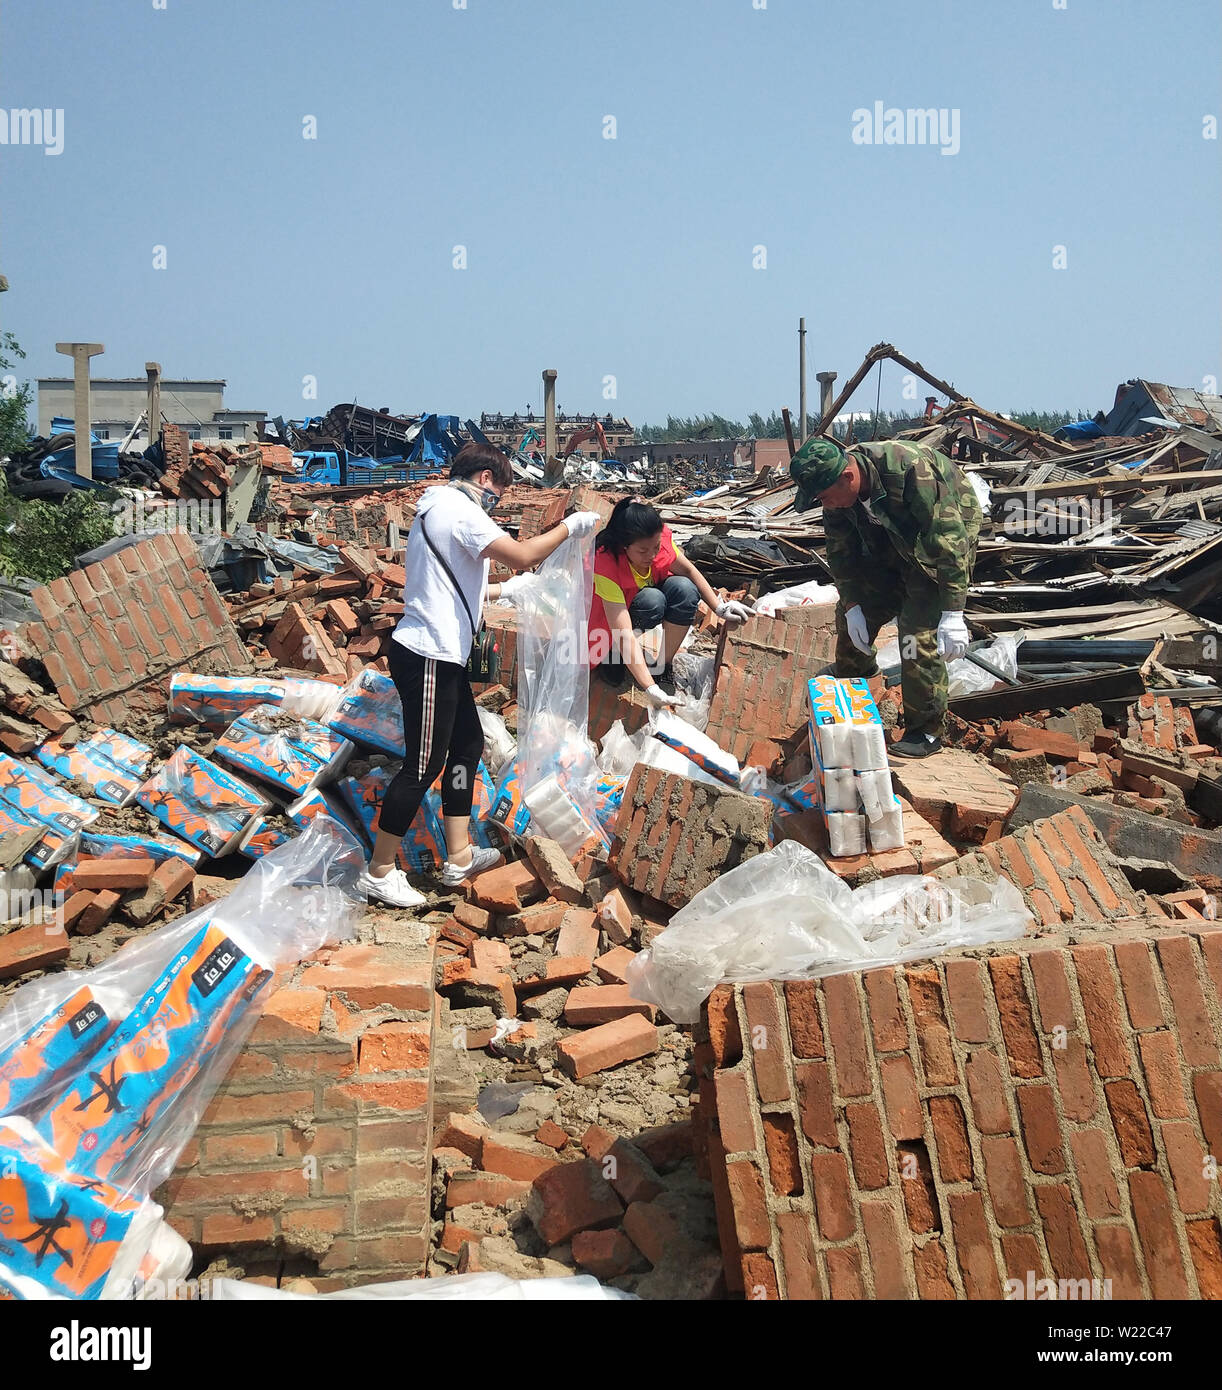 July 5, 2019 - Liaoning, Liaoning, China - Liaoning, China - July 4 2019: A tornado hit more than half of the city of kaiyuan, liaoning province, on July 3, 2019.Six people were killed and more than 190 injured.On July 4, more than 20 volunteers helped pick up toilet paper at a private toilet paper factory to minimize losses. (Credit Image: © SIPA Asia via ZUMA Wire) - Stock Image